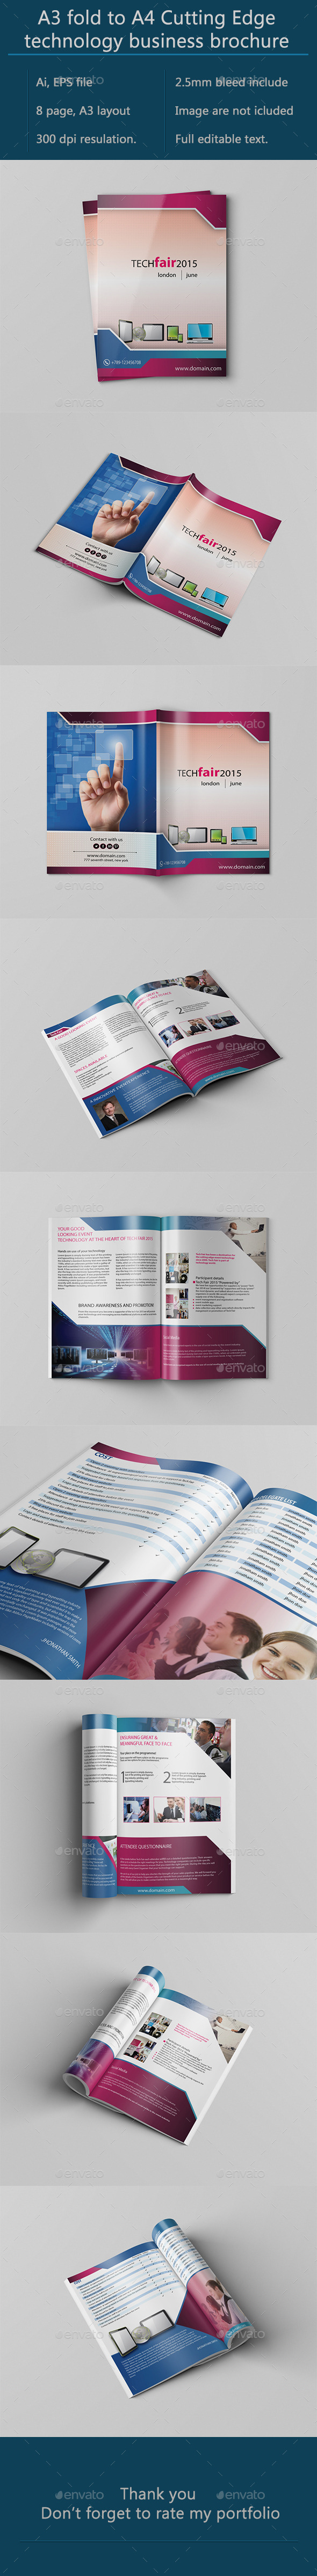 A3 Bifold Technology Brochure - Corporate Brochures